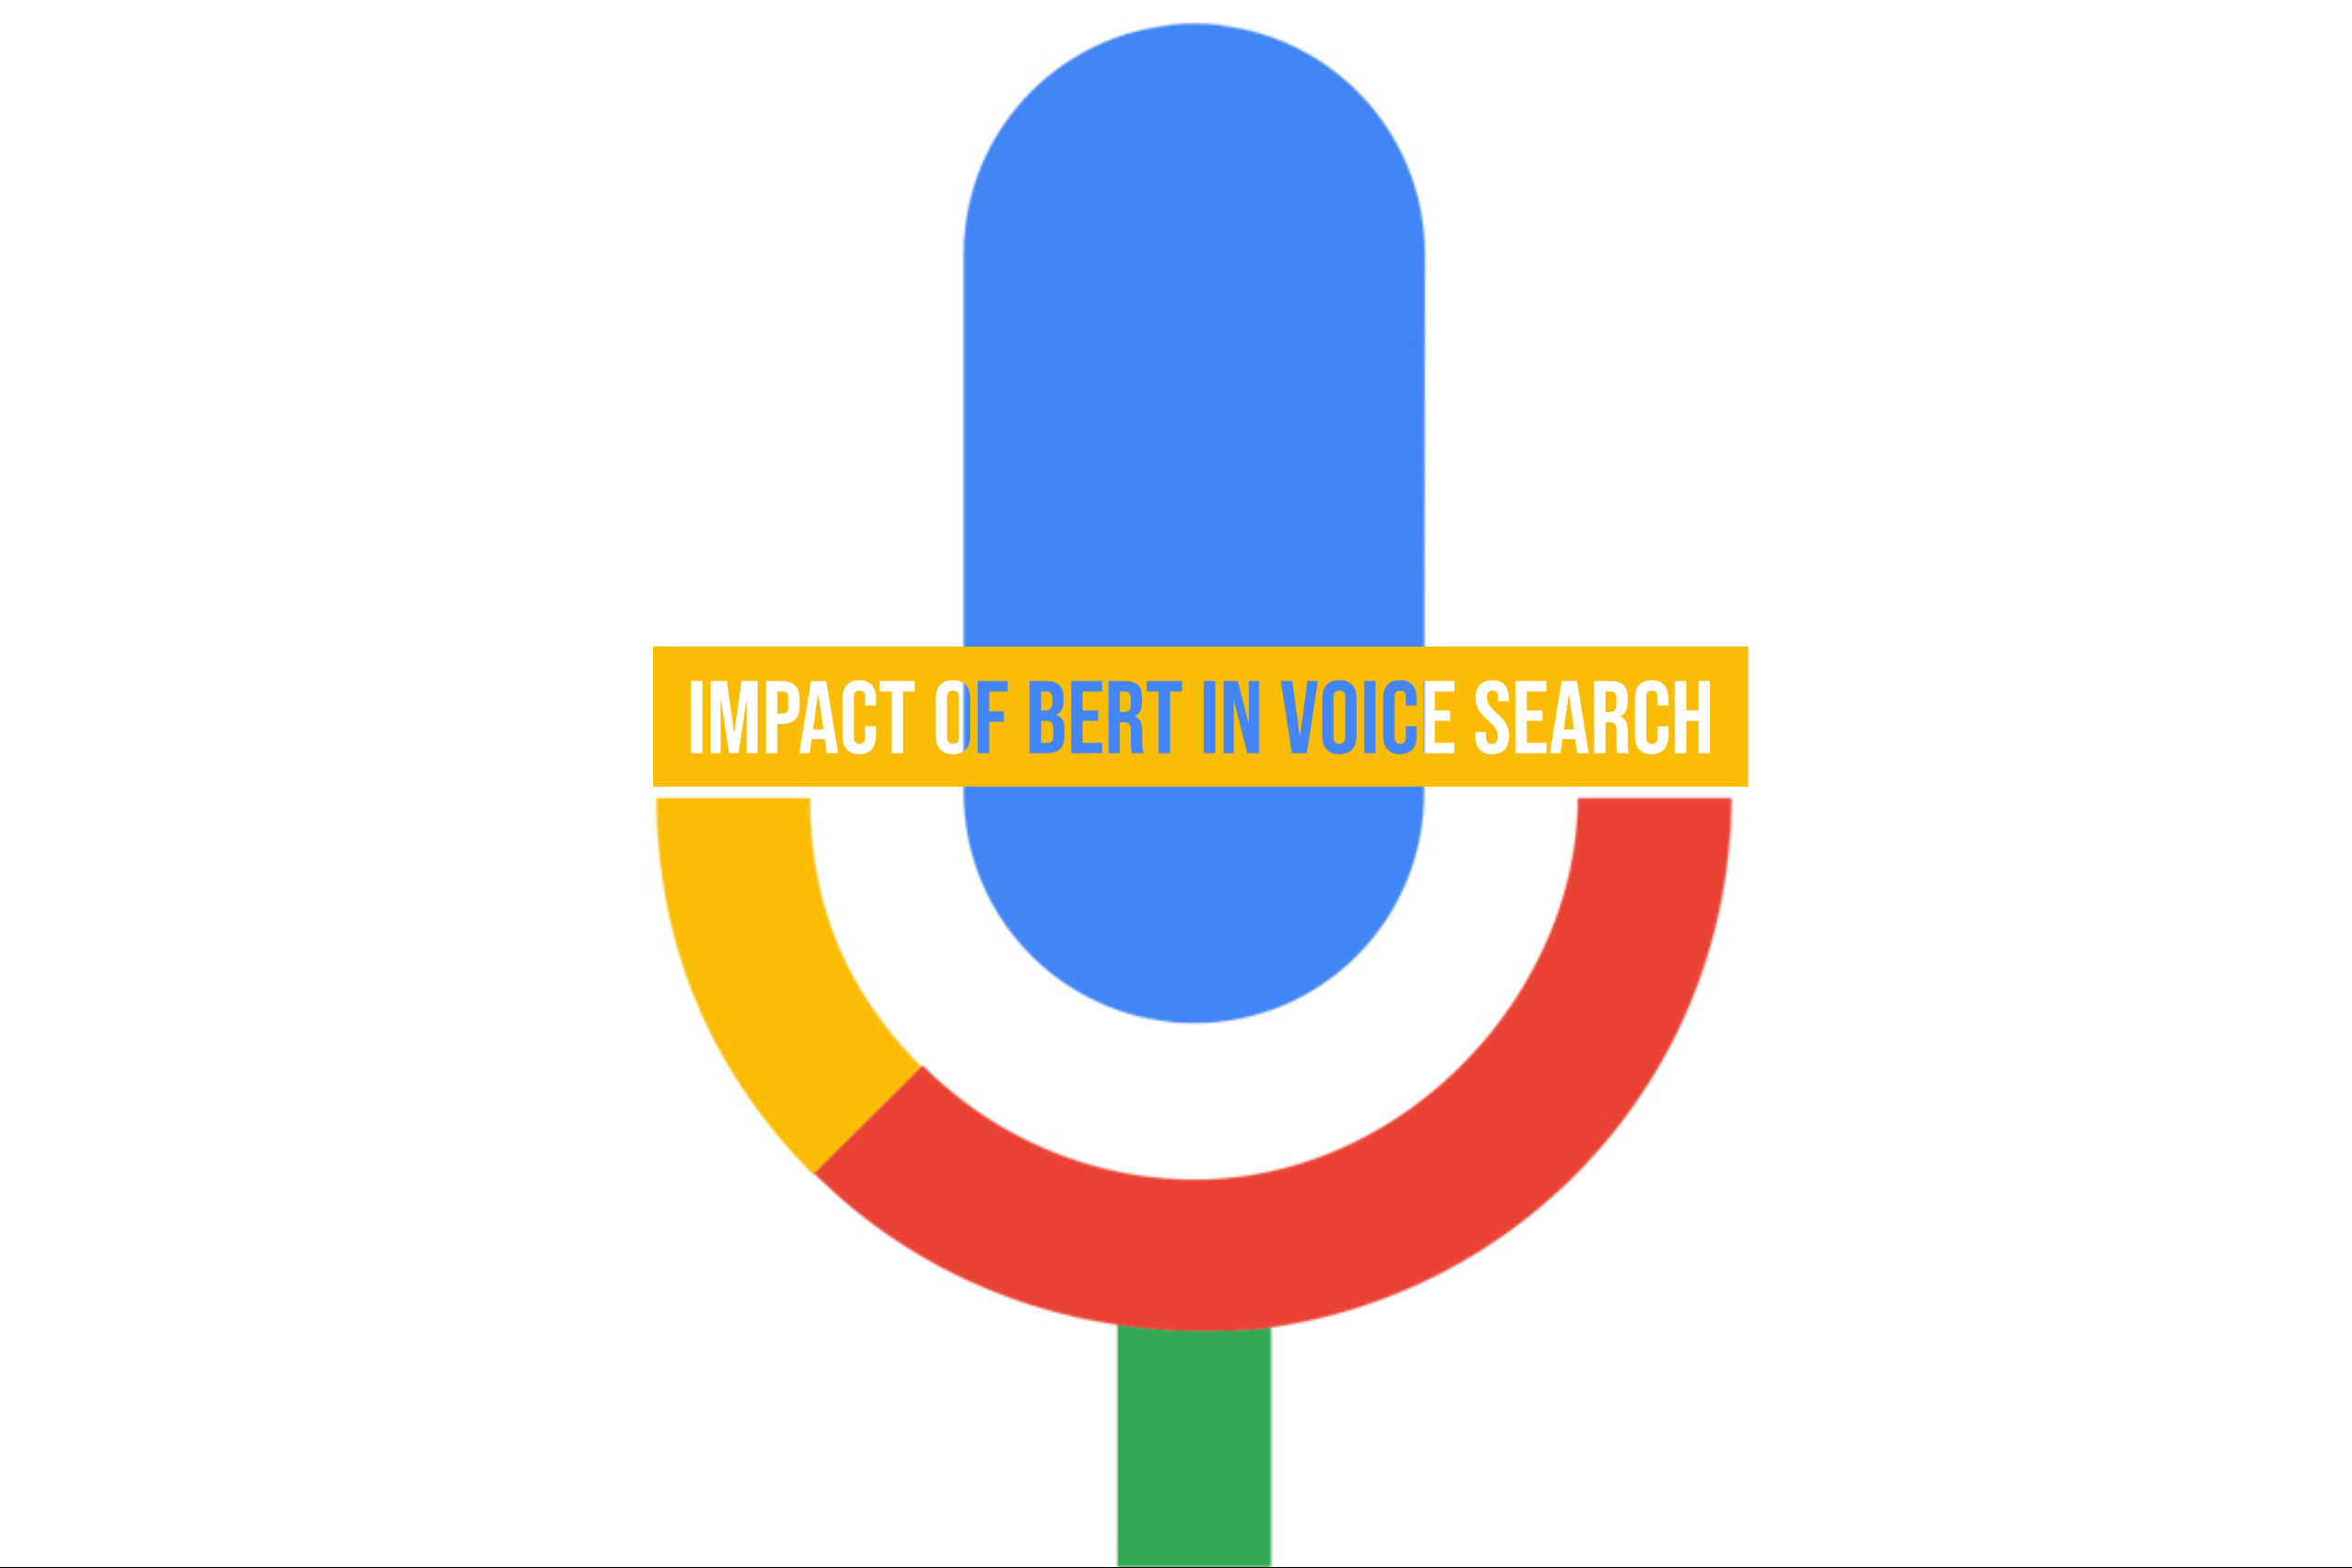 Impact Of Bert In Voice Search